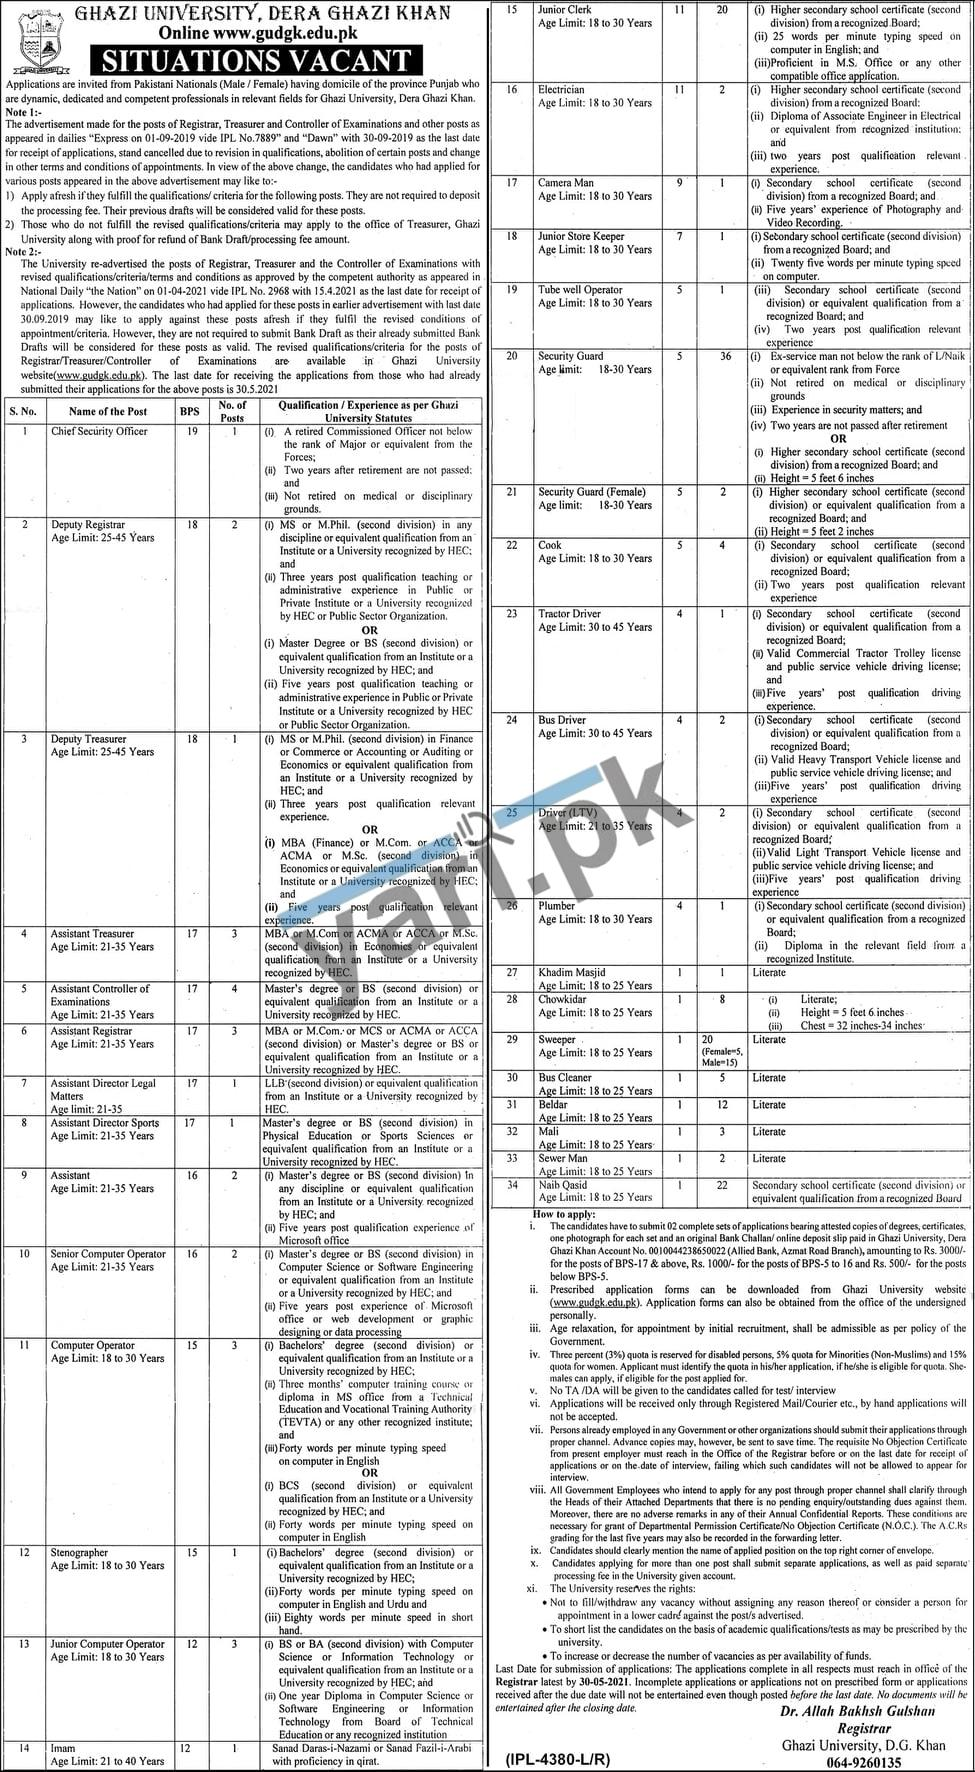 university-staff-jobs-2021-for-cook